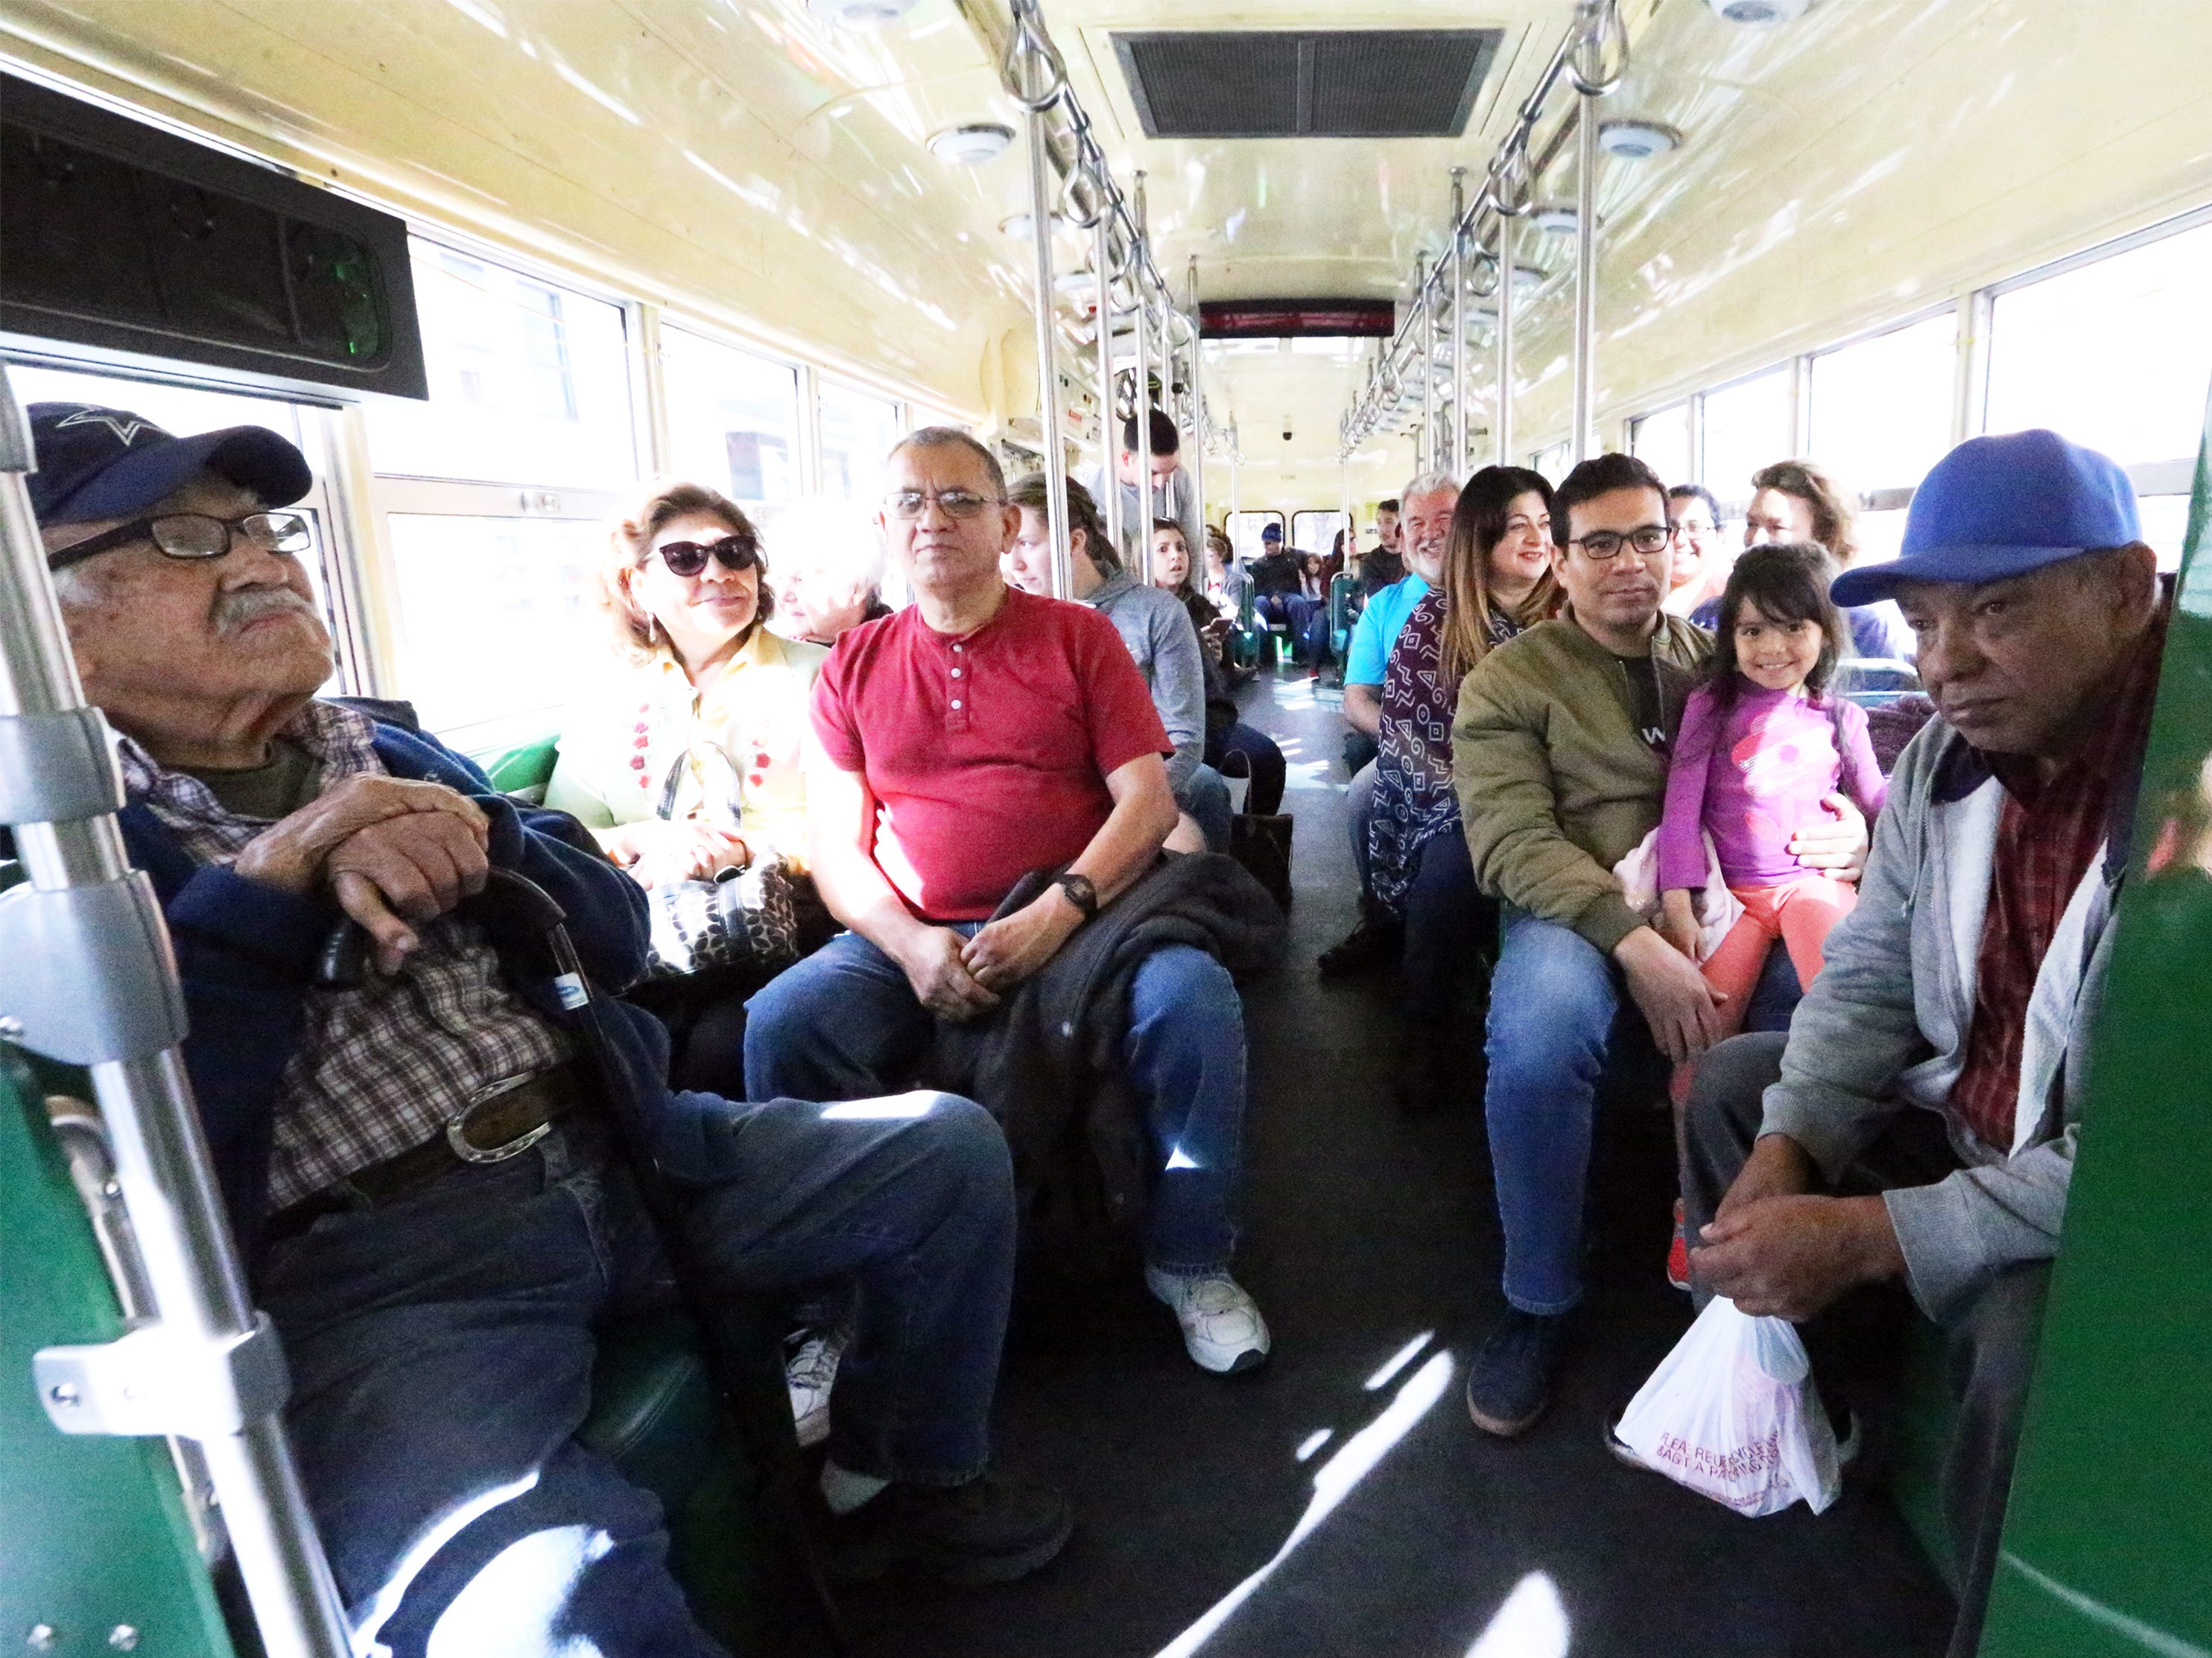 Jose Guevara, left, sits inside Streetcar 1506 Friday. Guevara recalls his days of riding streetcars over the Paso Del Norte international bridge in years past and was treated to the ride by his family for his 98th birthday.